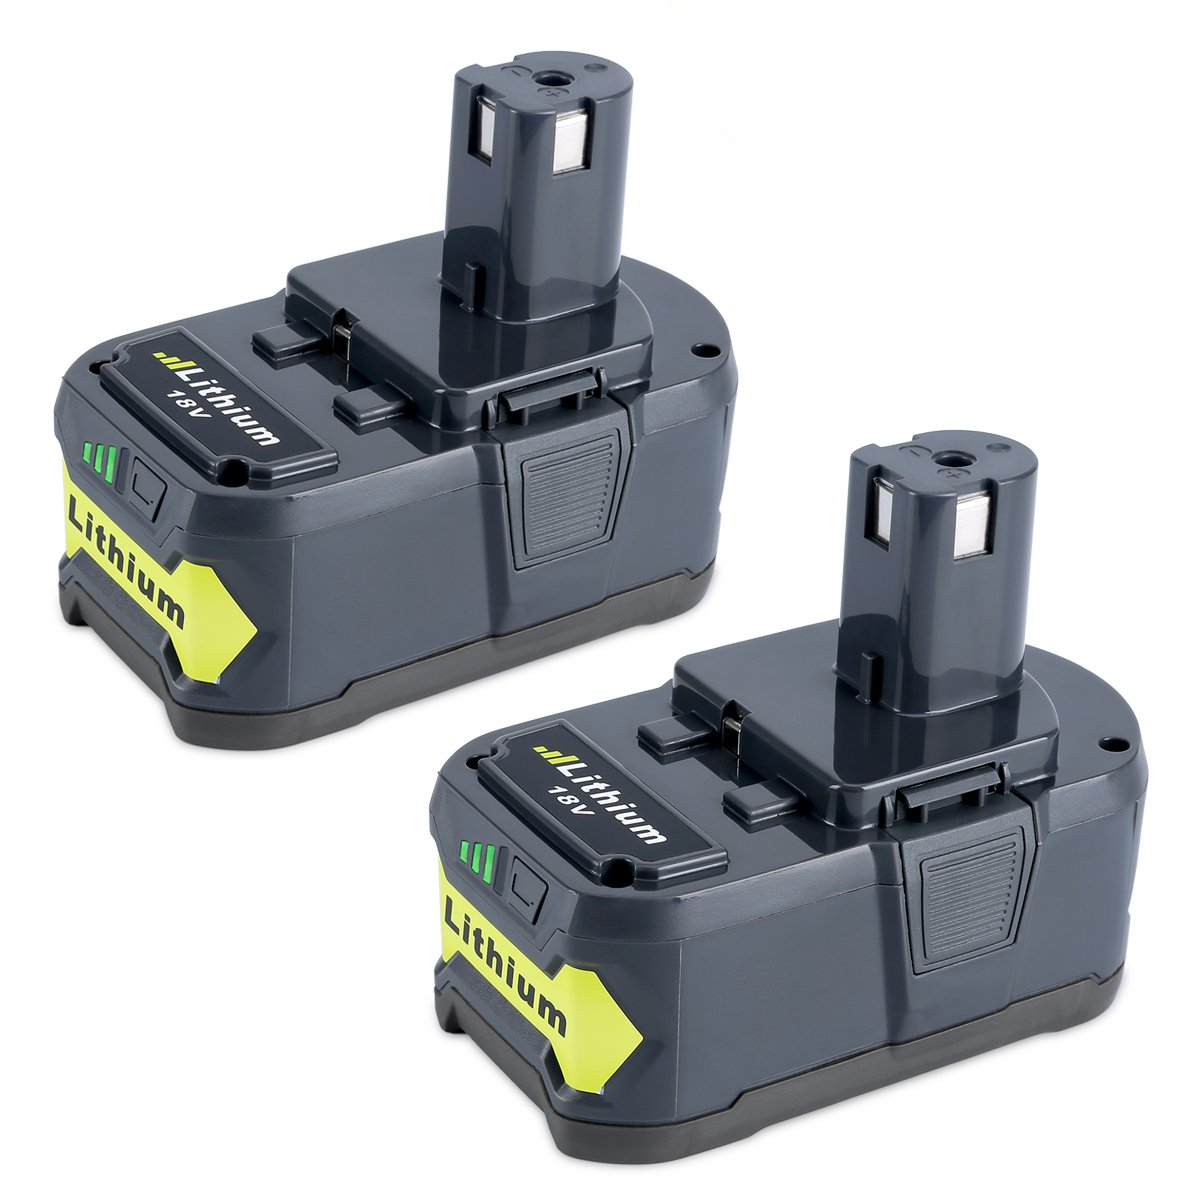 Biswaye 2 Pack 18V 5000mAH Lithium Ion Replacement Battery for Ryobi 18-Volt ONE+ Tool P122 P102 P103 P104 P105 P107 P108 P109 P100